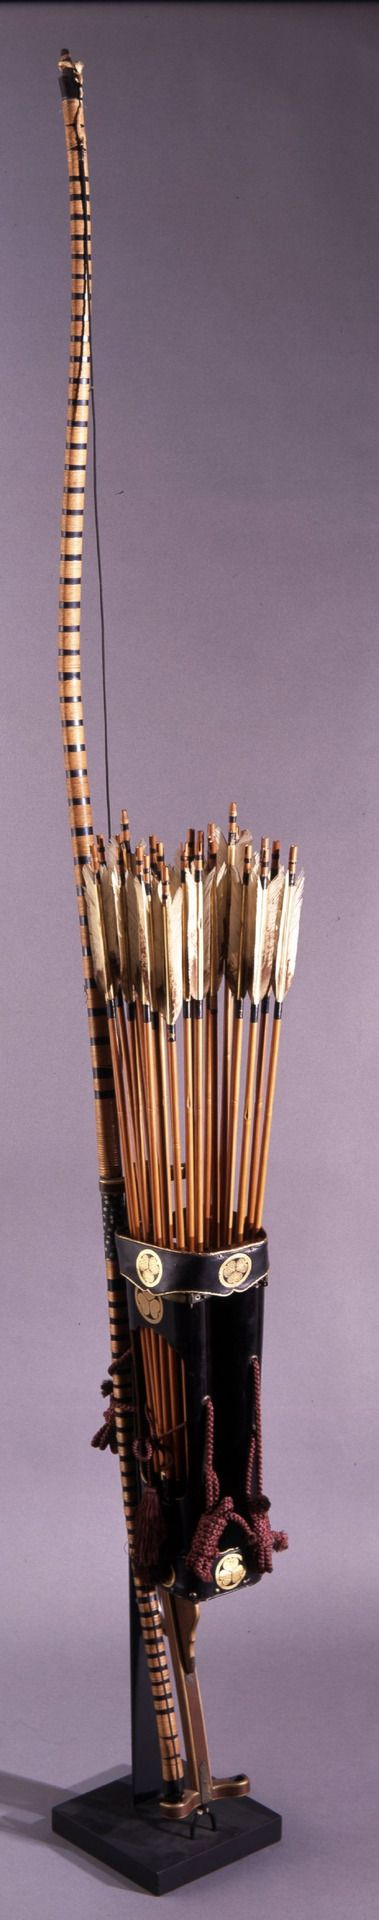 Archery set, one bow missing. Edo period, early to mid 19th century, Japan.